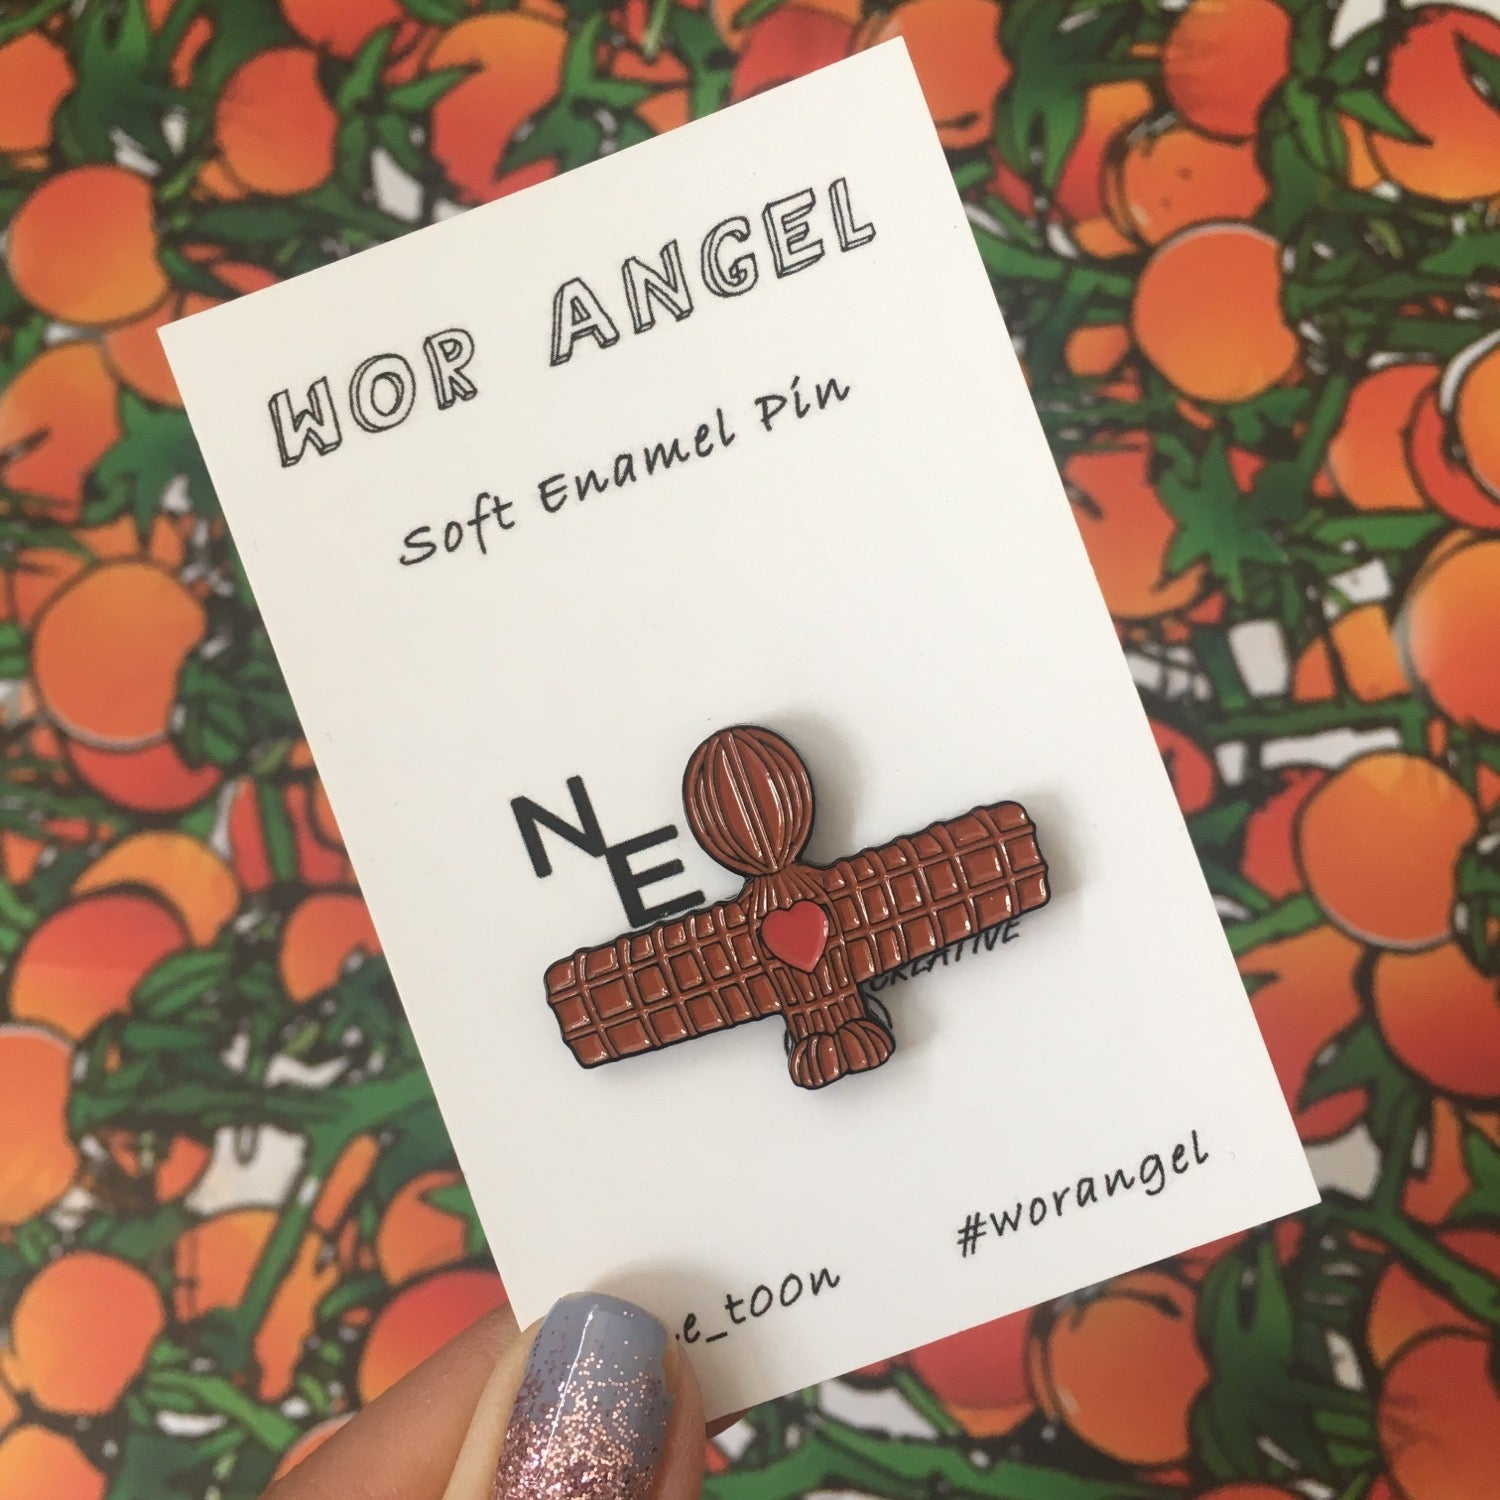 Wor Heart Angel pin badge